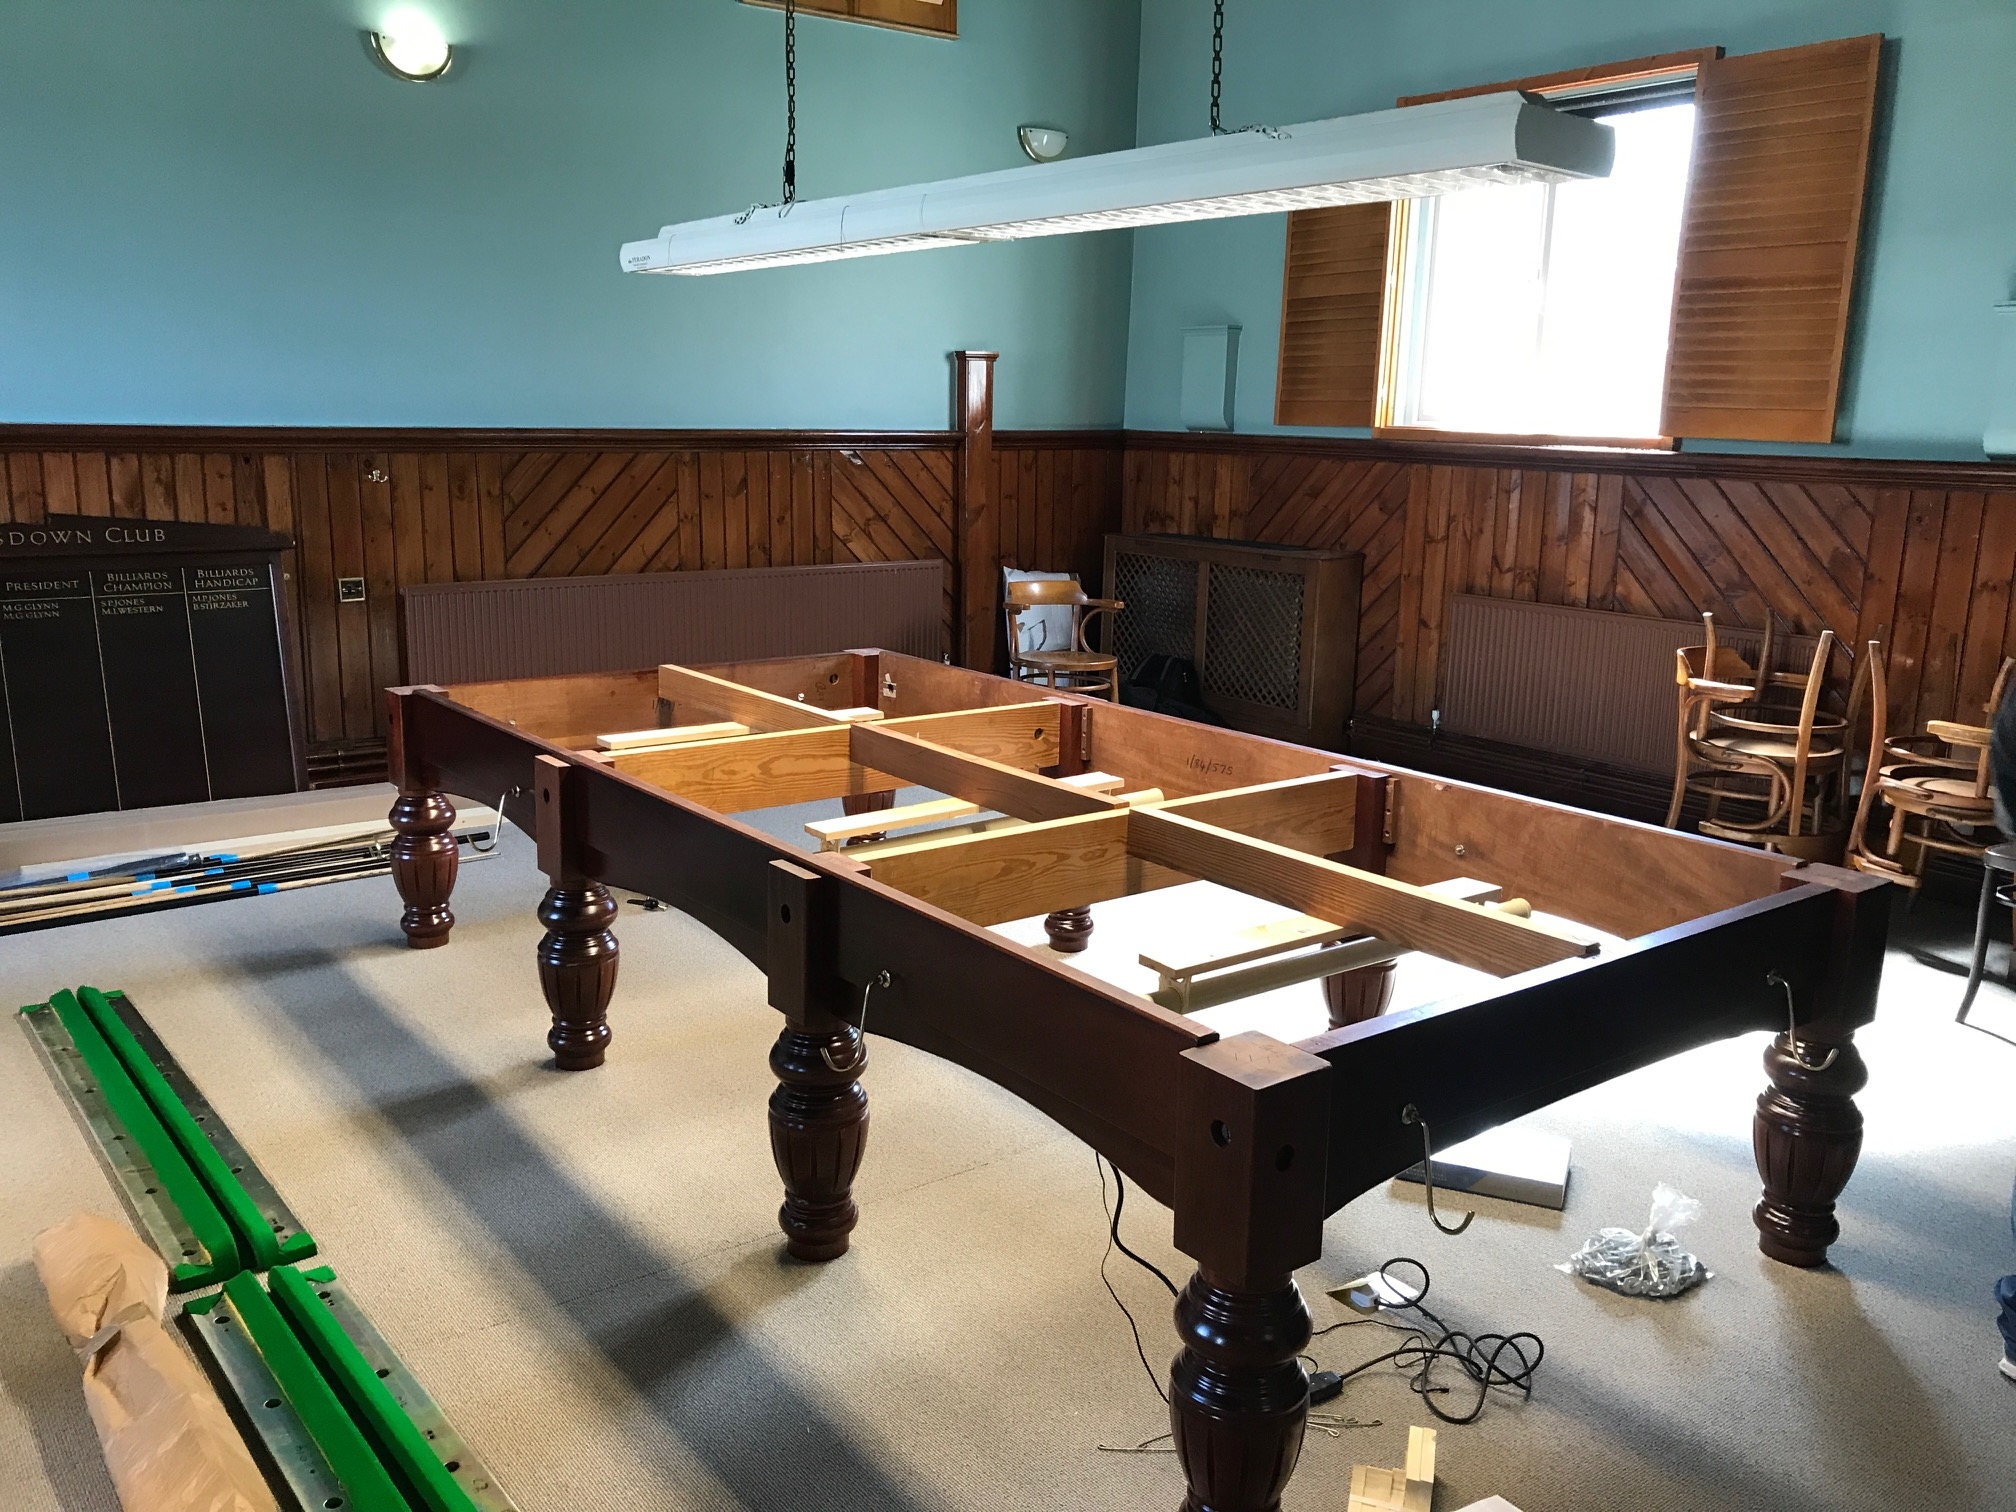 Snooker Table Stripped